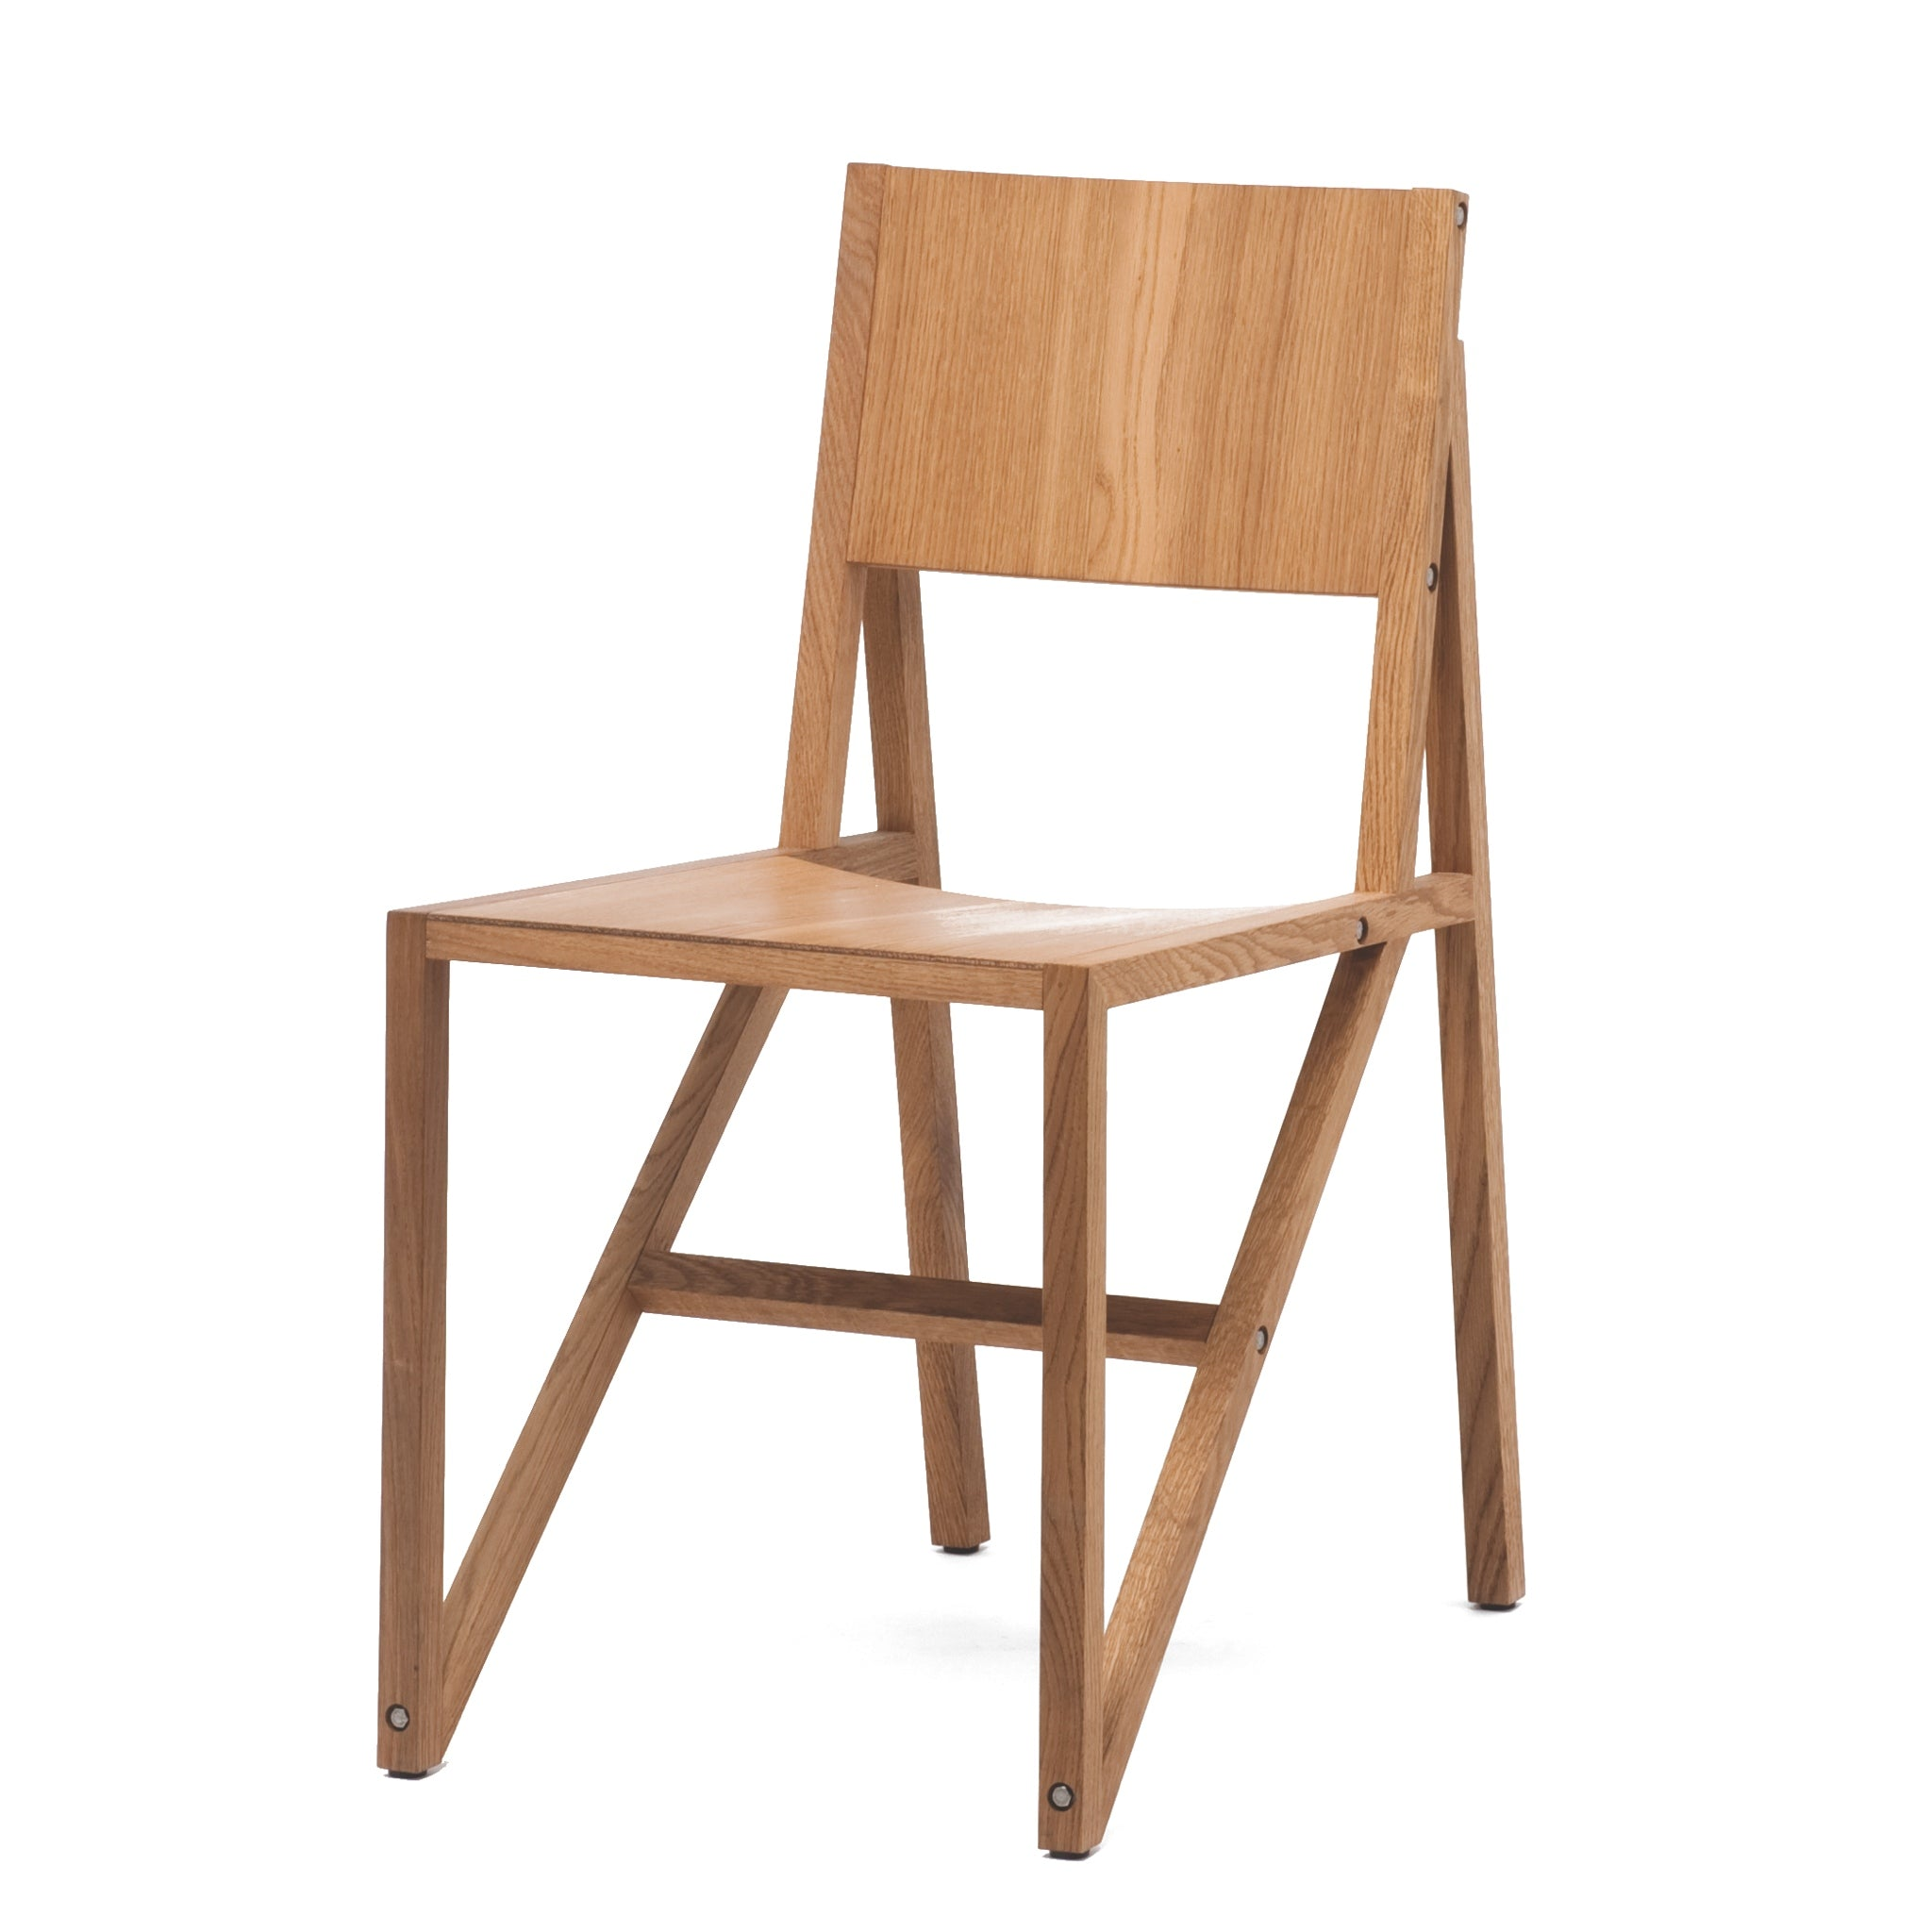 Frame chair by Established & Sons - haus®